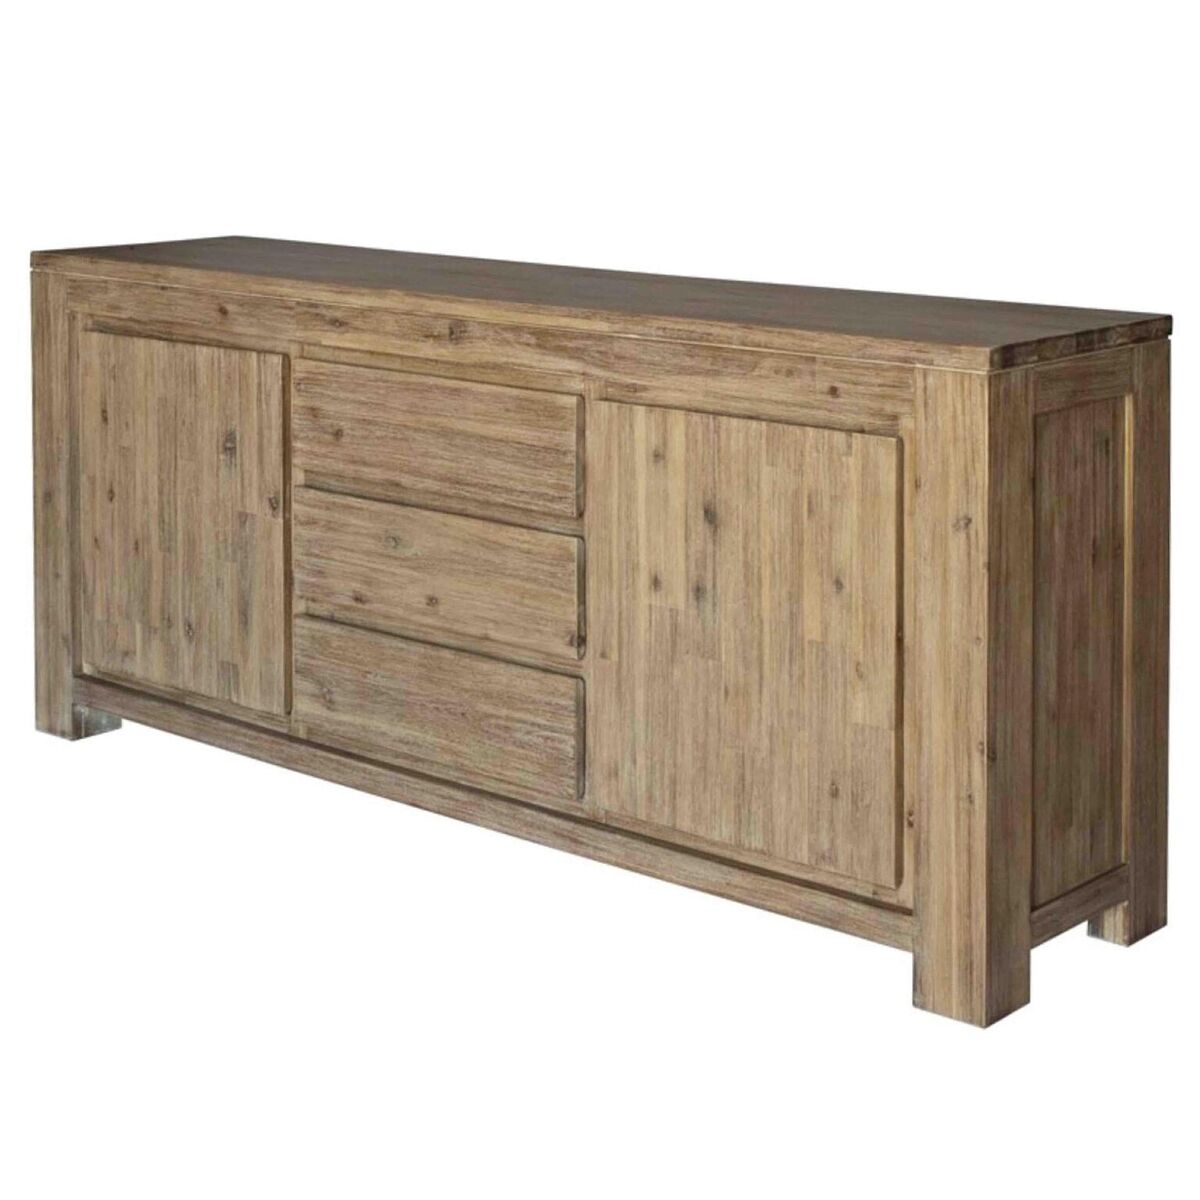 Symmetrical Acacia Wood Storage Credenza